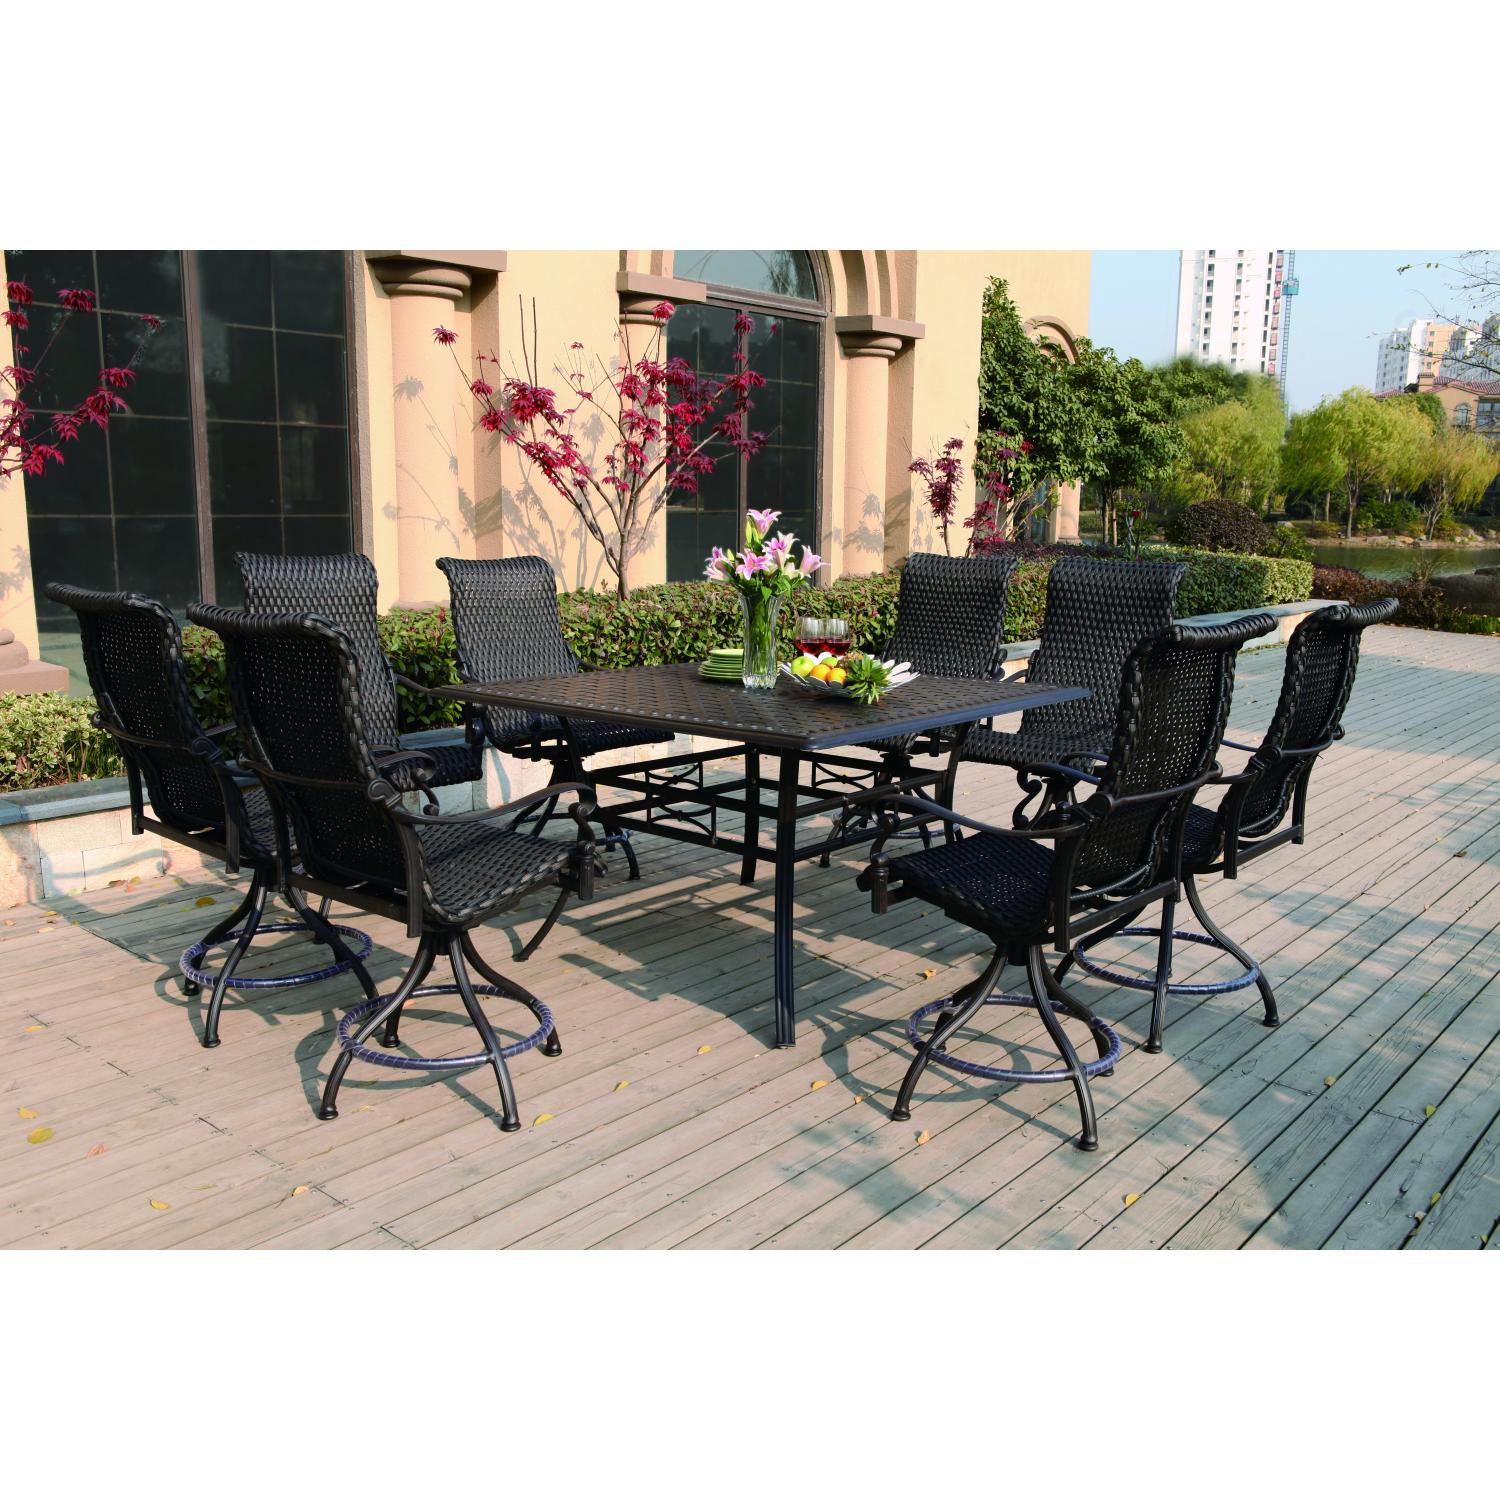 Darlee Victoria 9 Piece Resin Wicker Counter Height Patio Dining Set ...